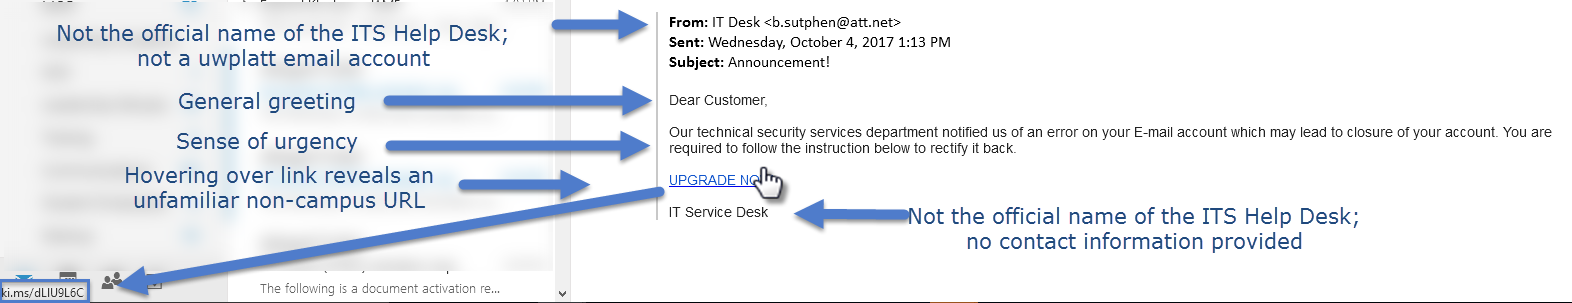 Phishing attempt 1